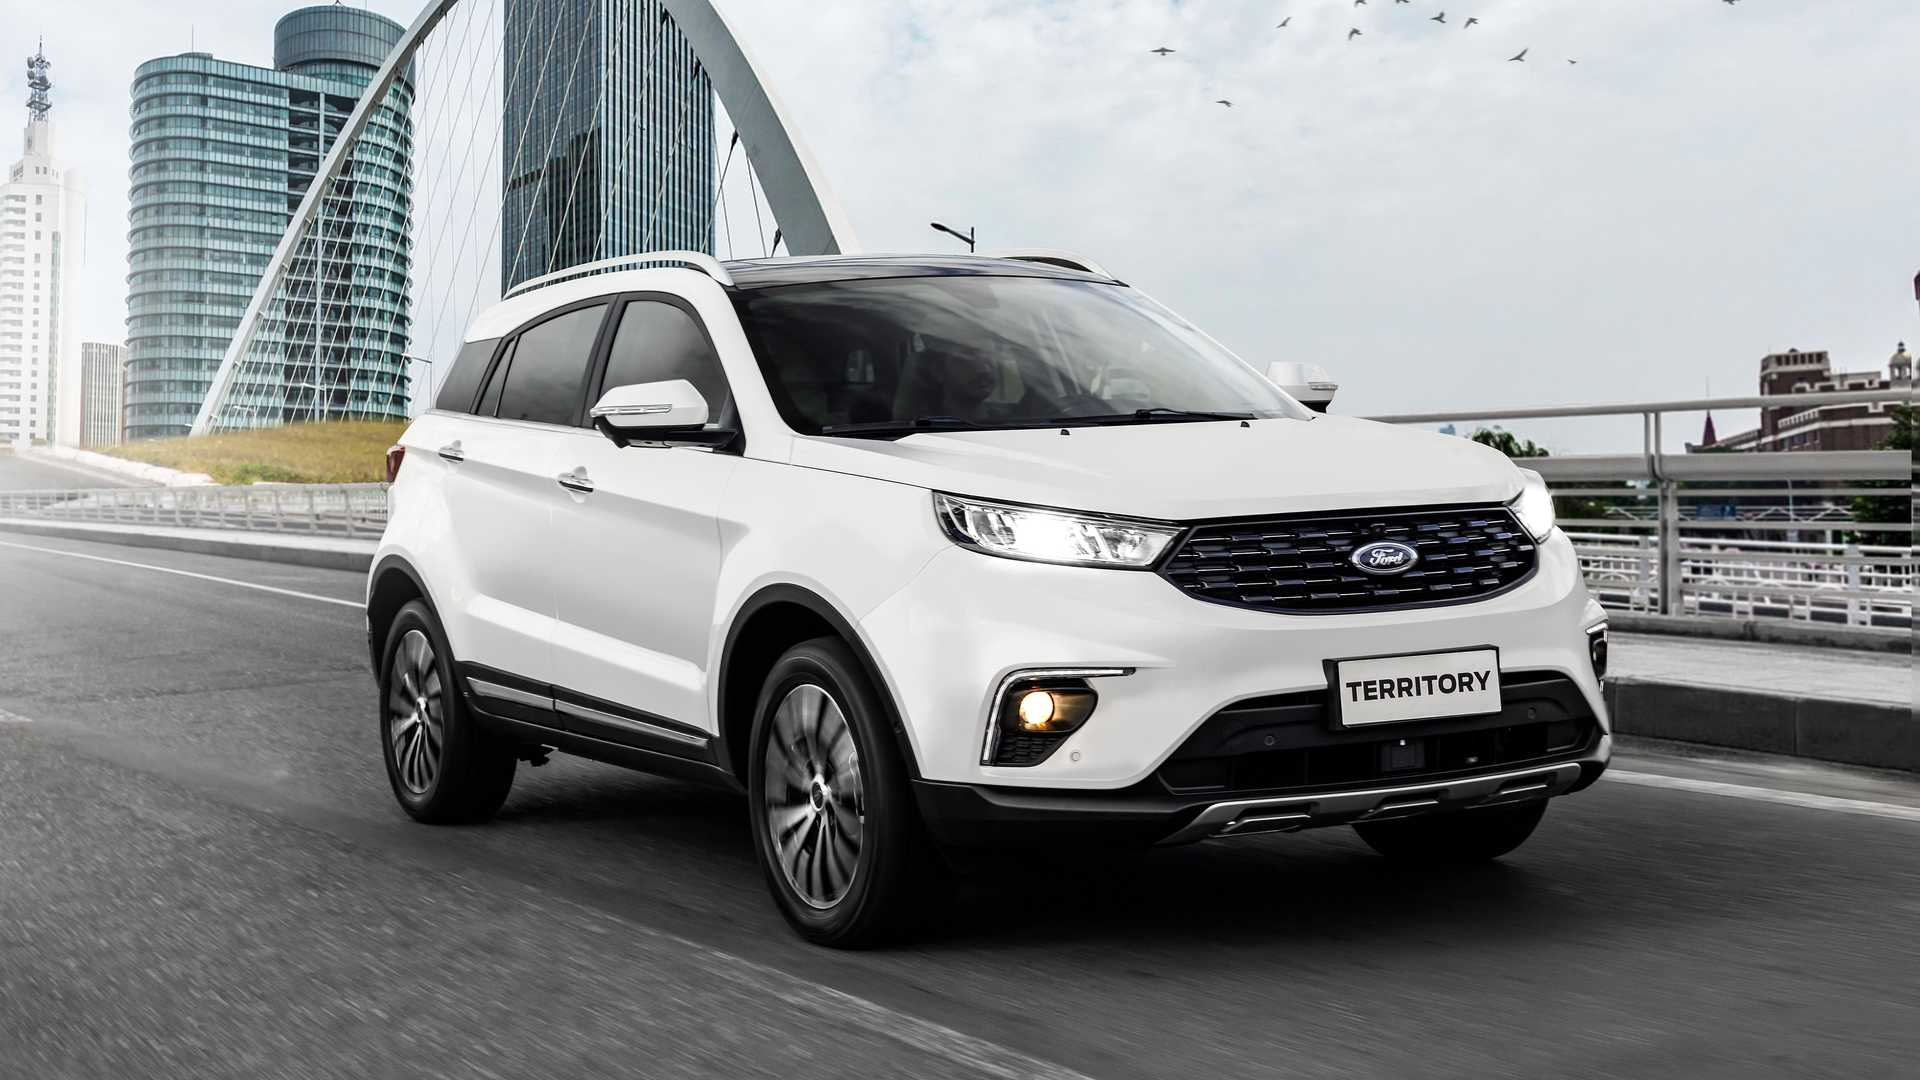 Ford Territory 2021